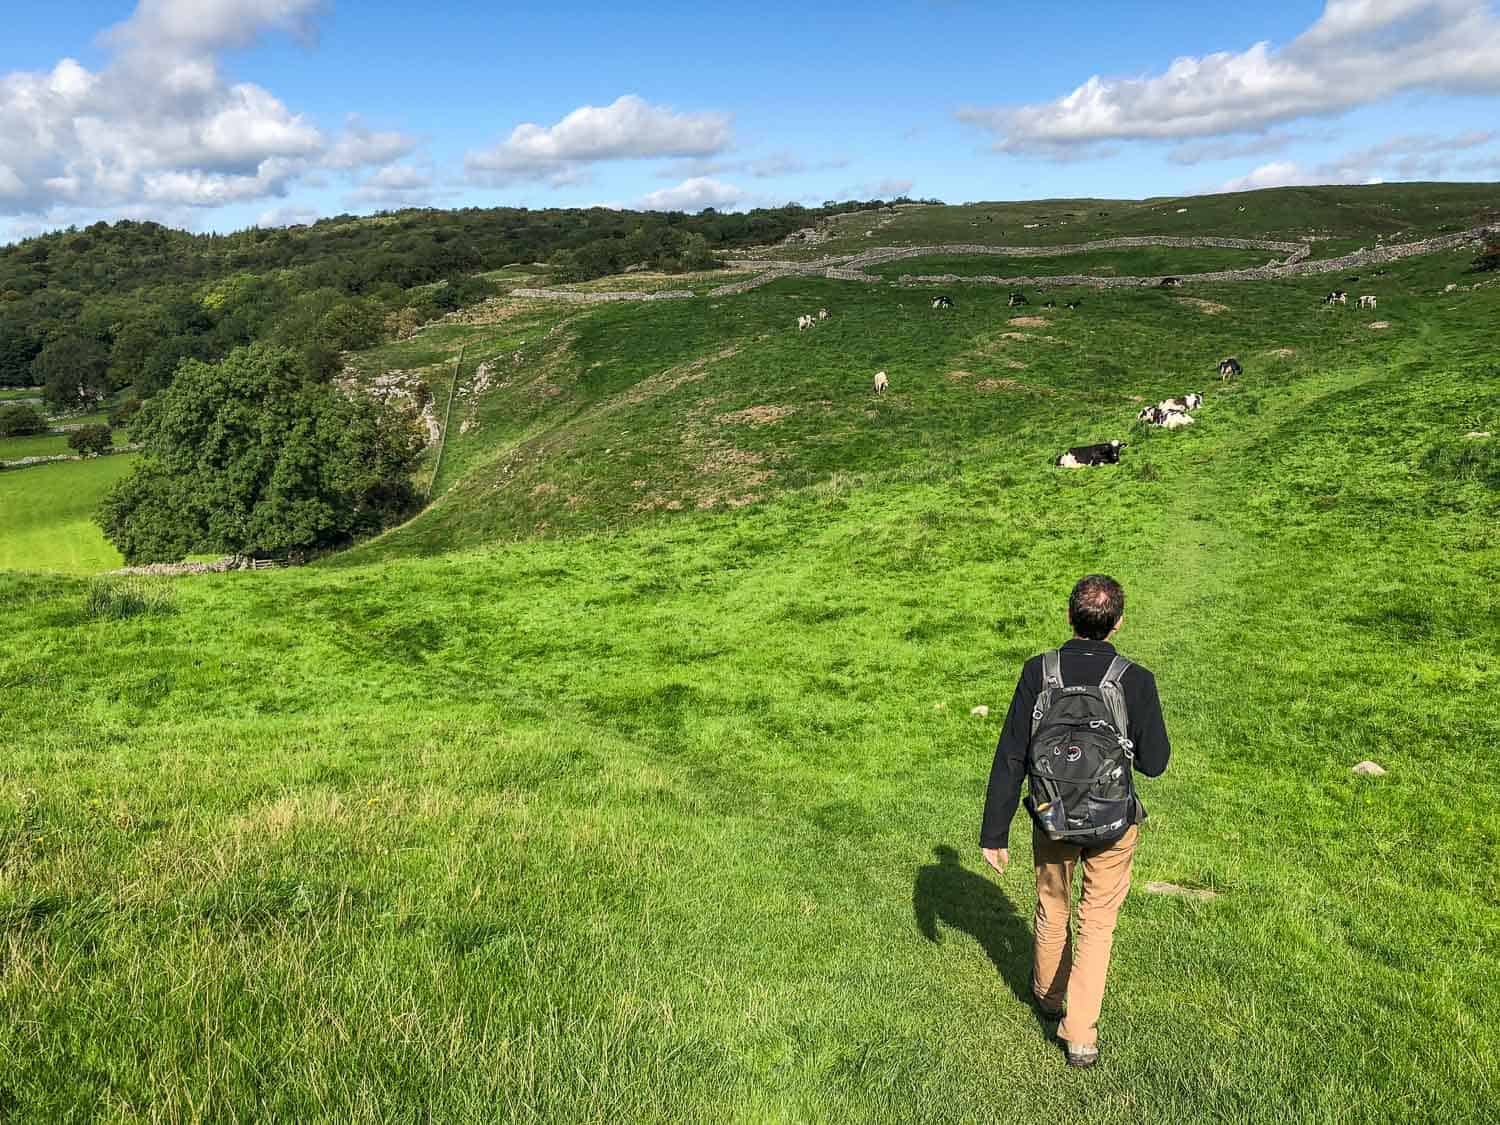 Hiking the Dales Way long distance footpath in northern England